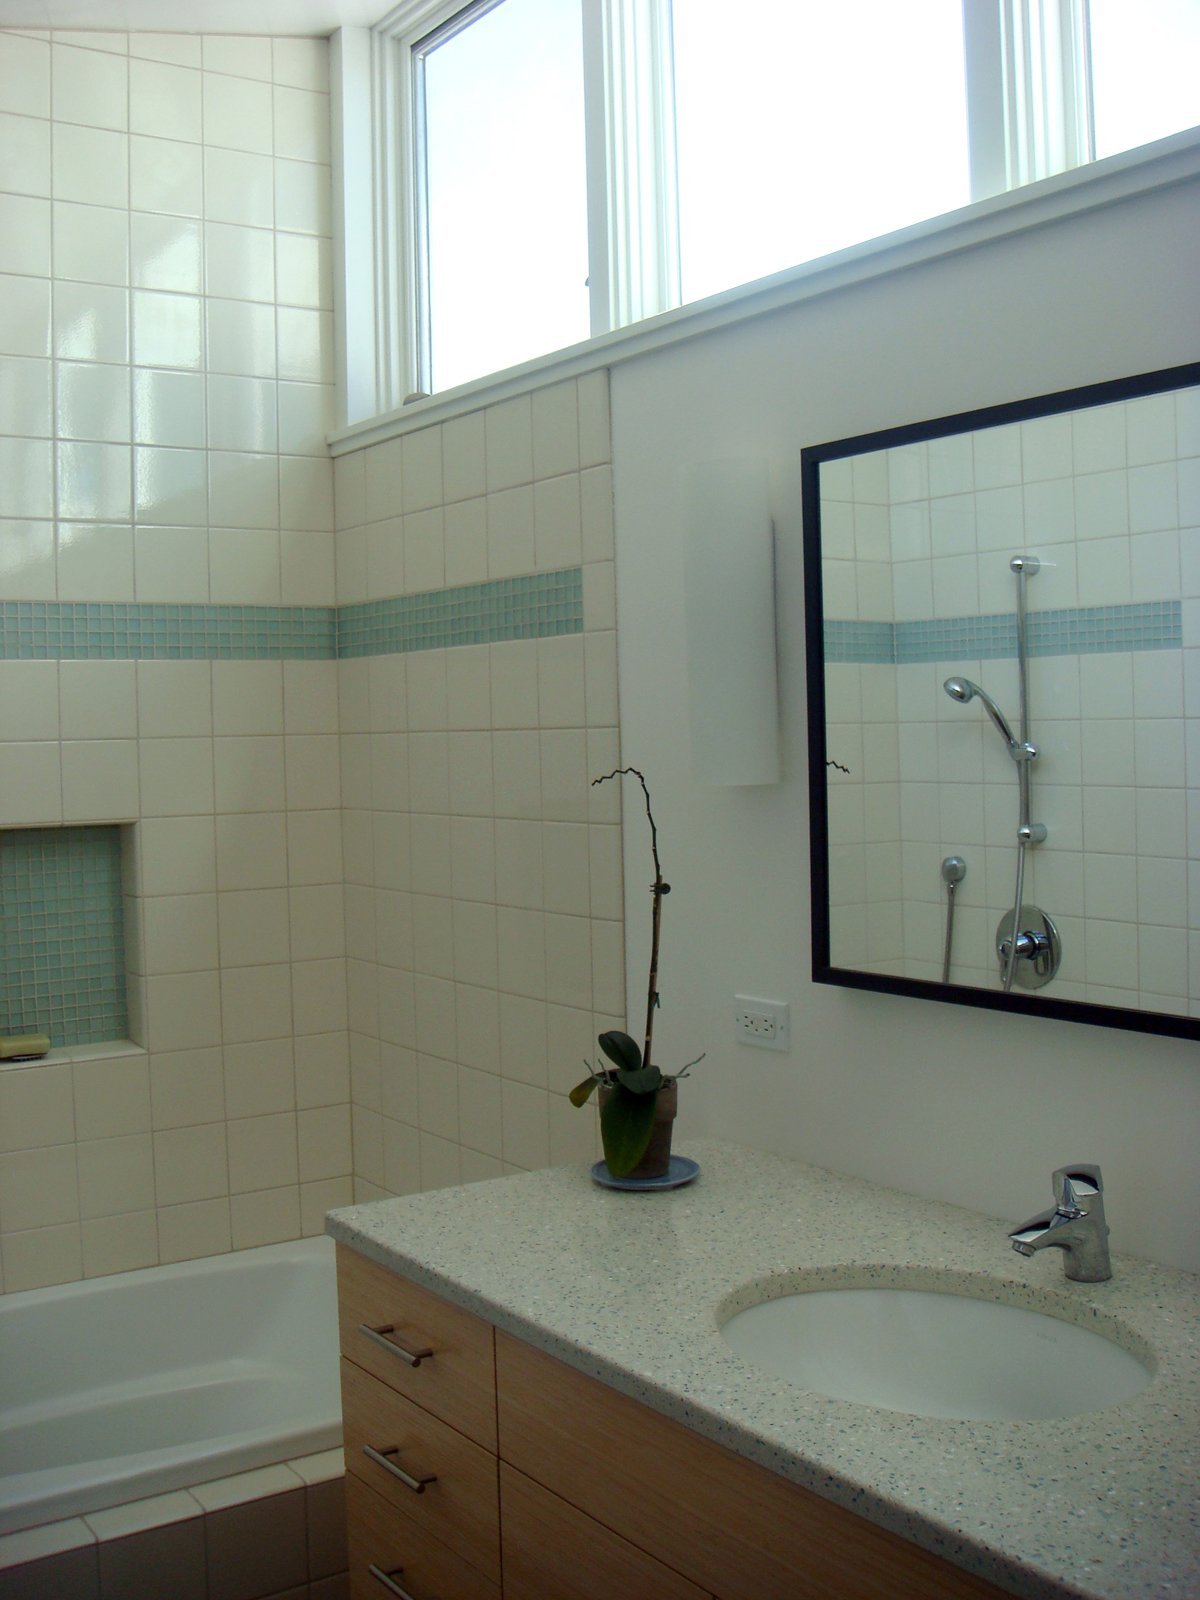 The bathroom features recycled countertops by IceStone. The low-flow sink faucet and the Croma E 75 shower fixture (visible in the mirror) are by HansGrohe. The tile in the shower is by Horus.  Building Green in Albany by Diana Budds